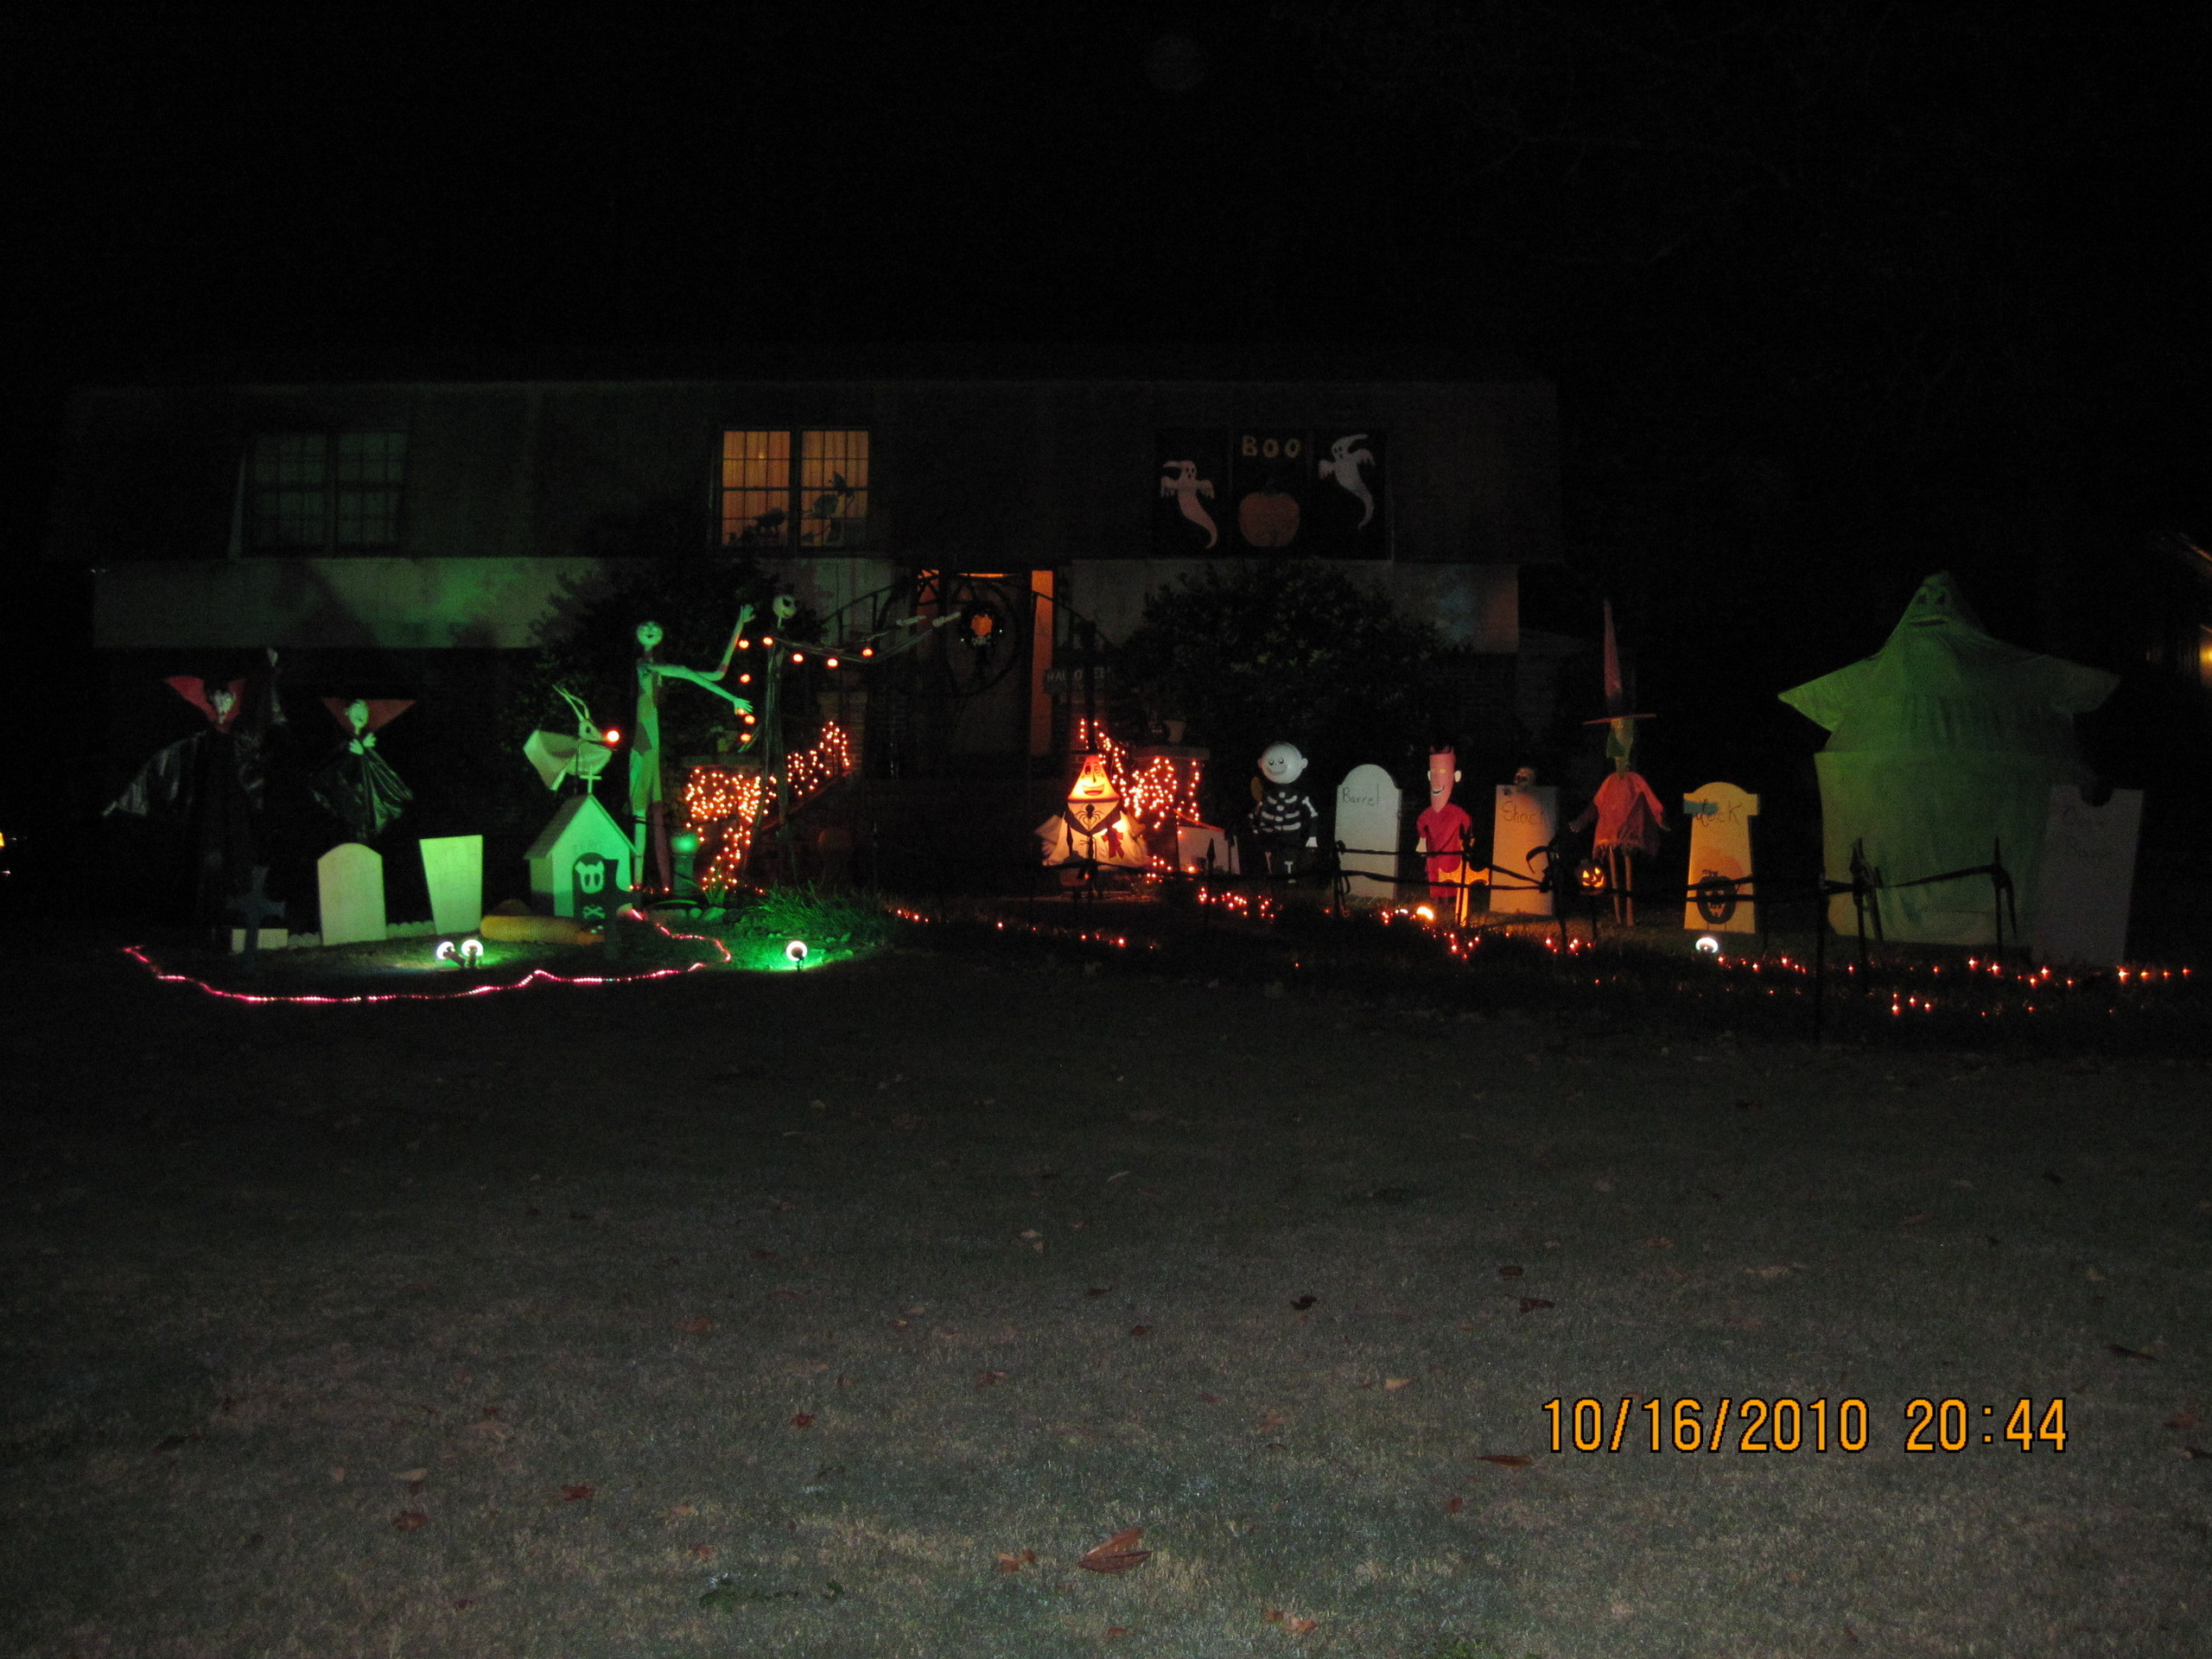 Nightmare Before Christmas House Birmingham Alabam - Nightmare Before ...